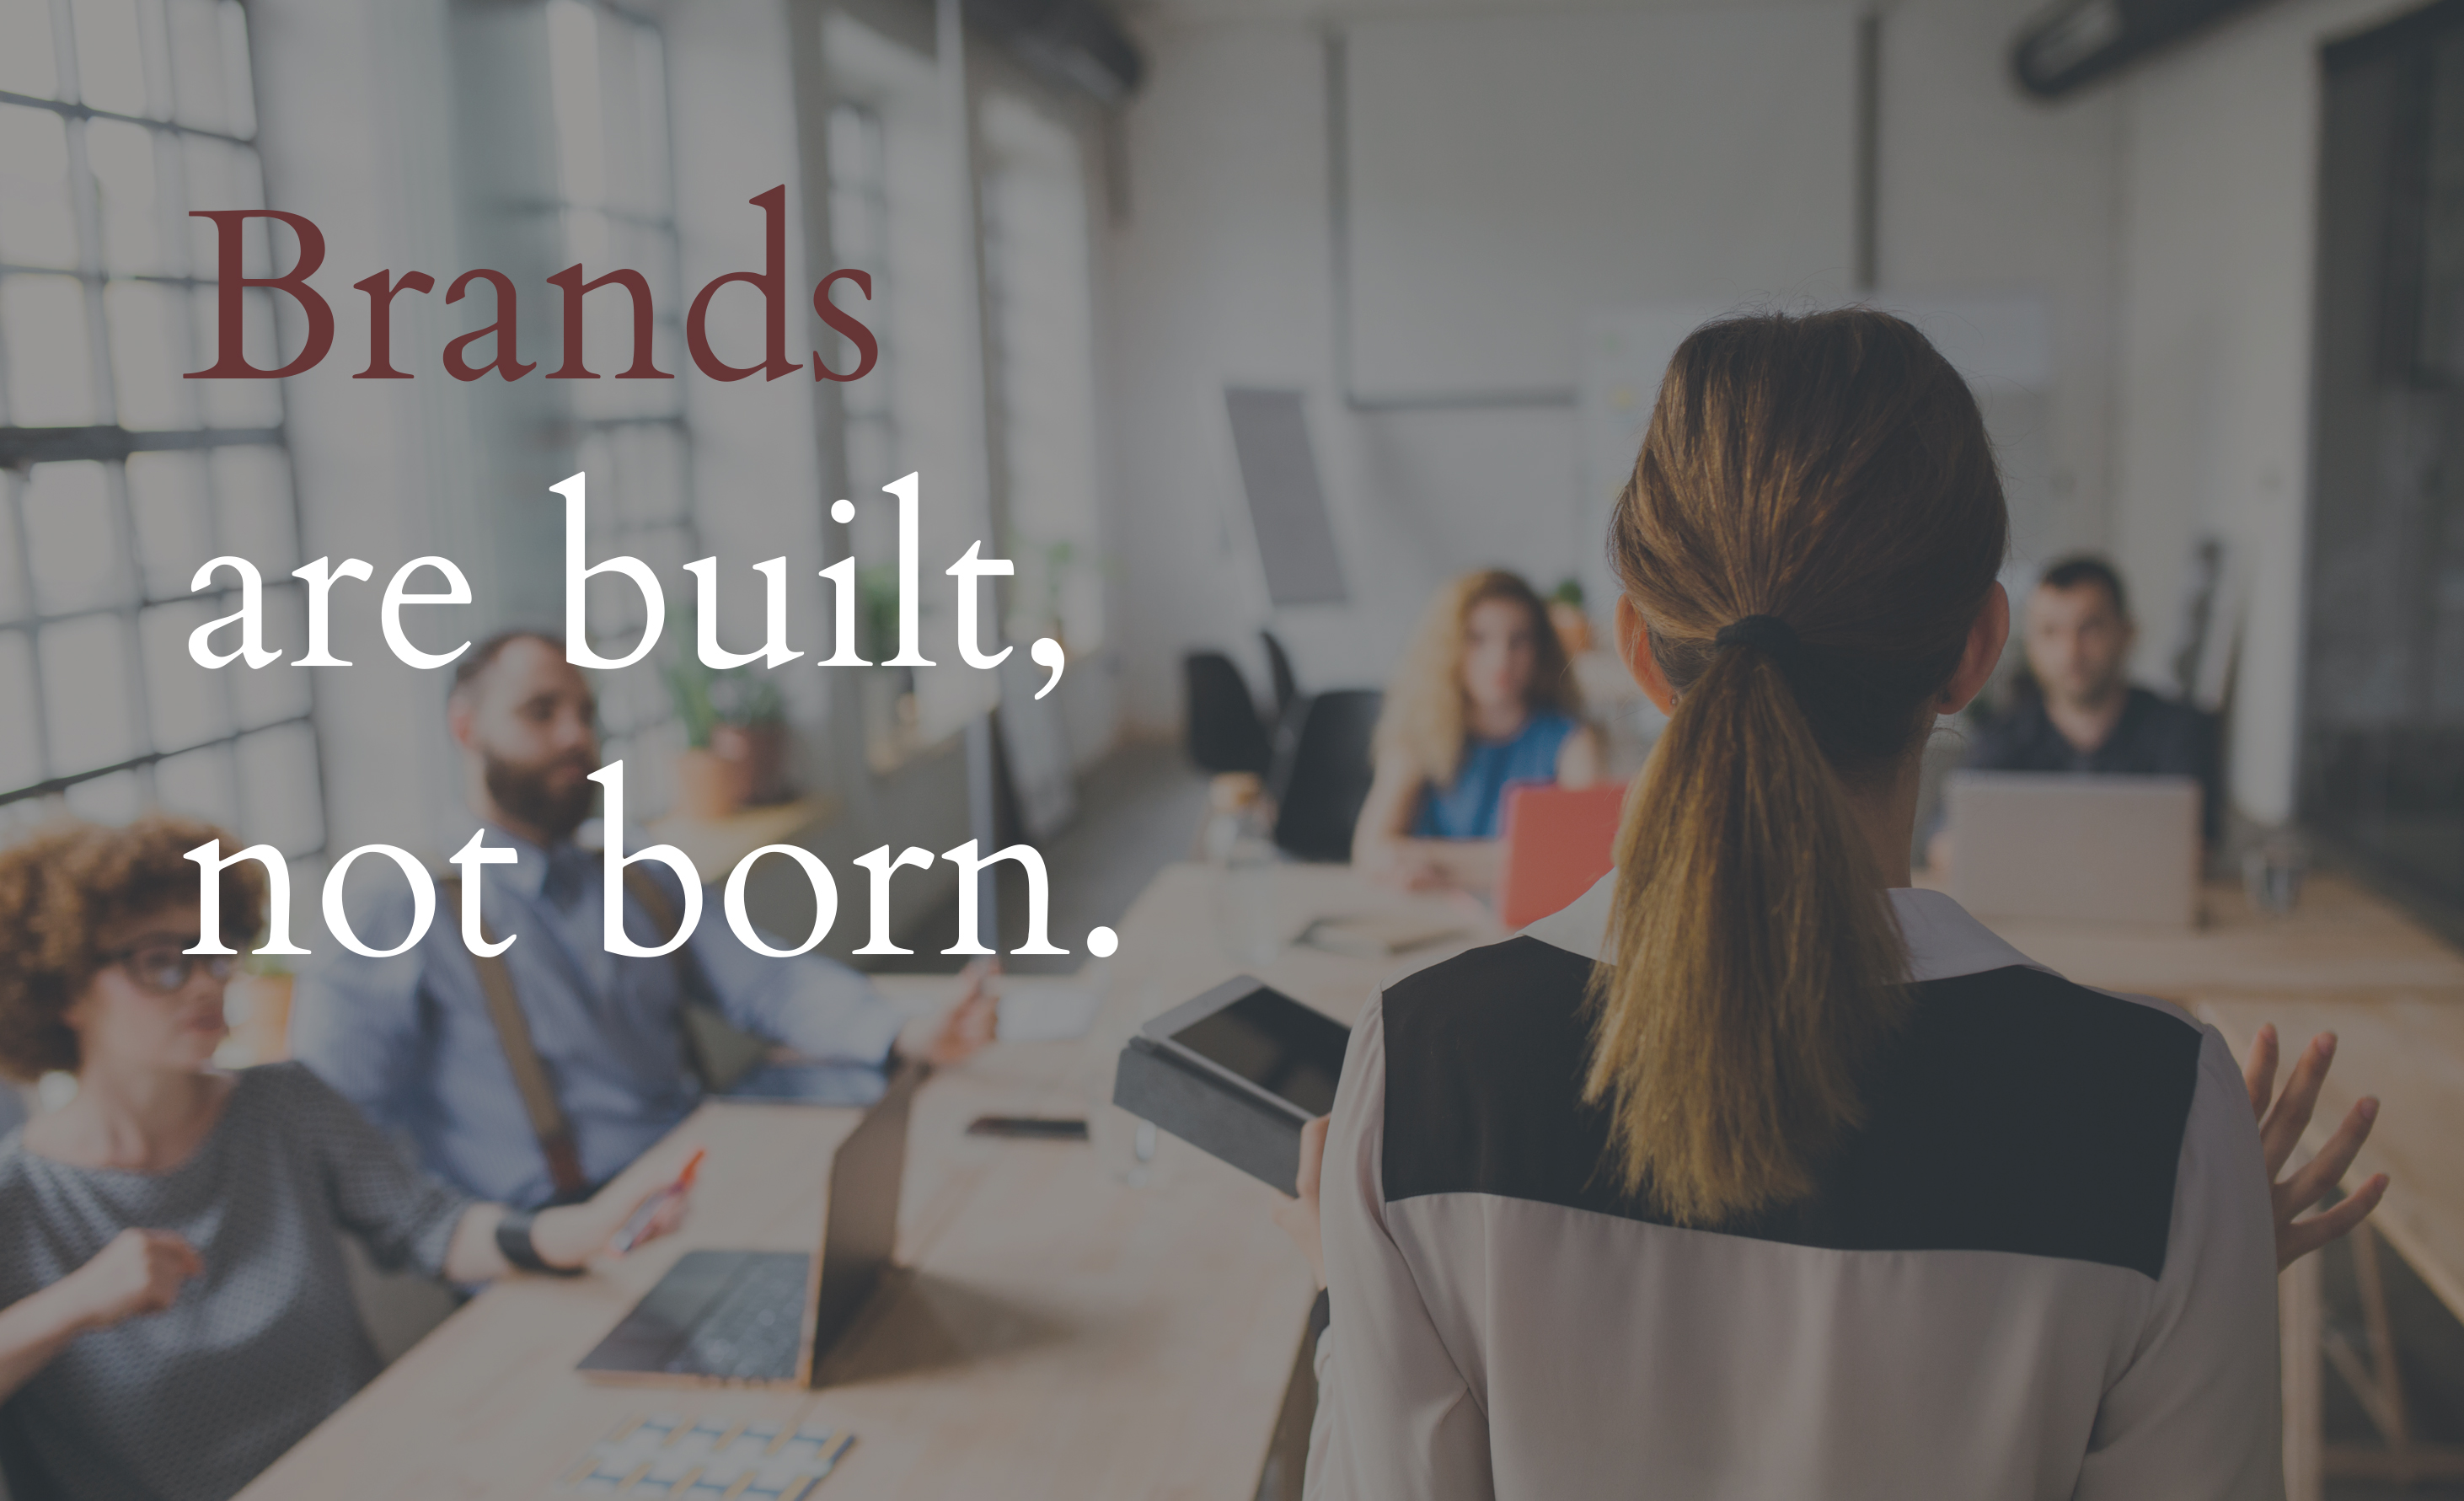 At Aguilar PR, brands are built, not born. Our team of public relations and media strategists can help increase your company's brand awareness and credibility.